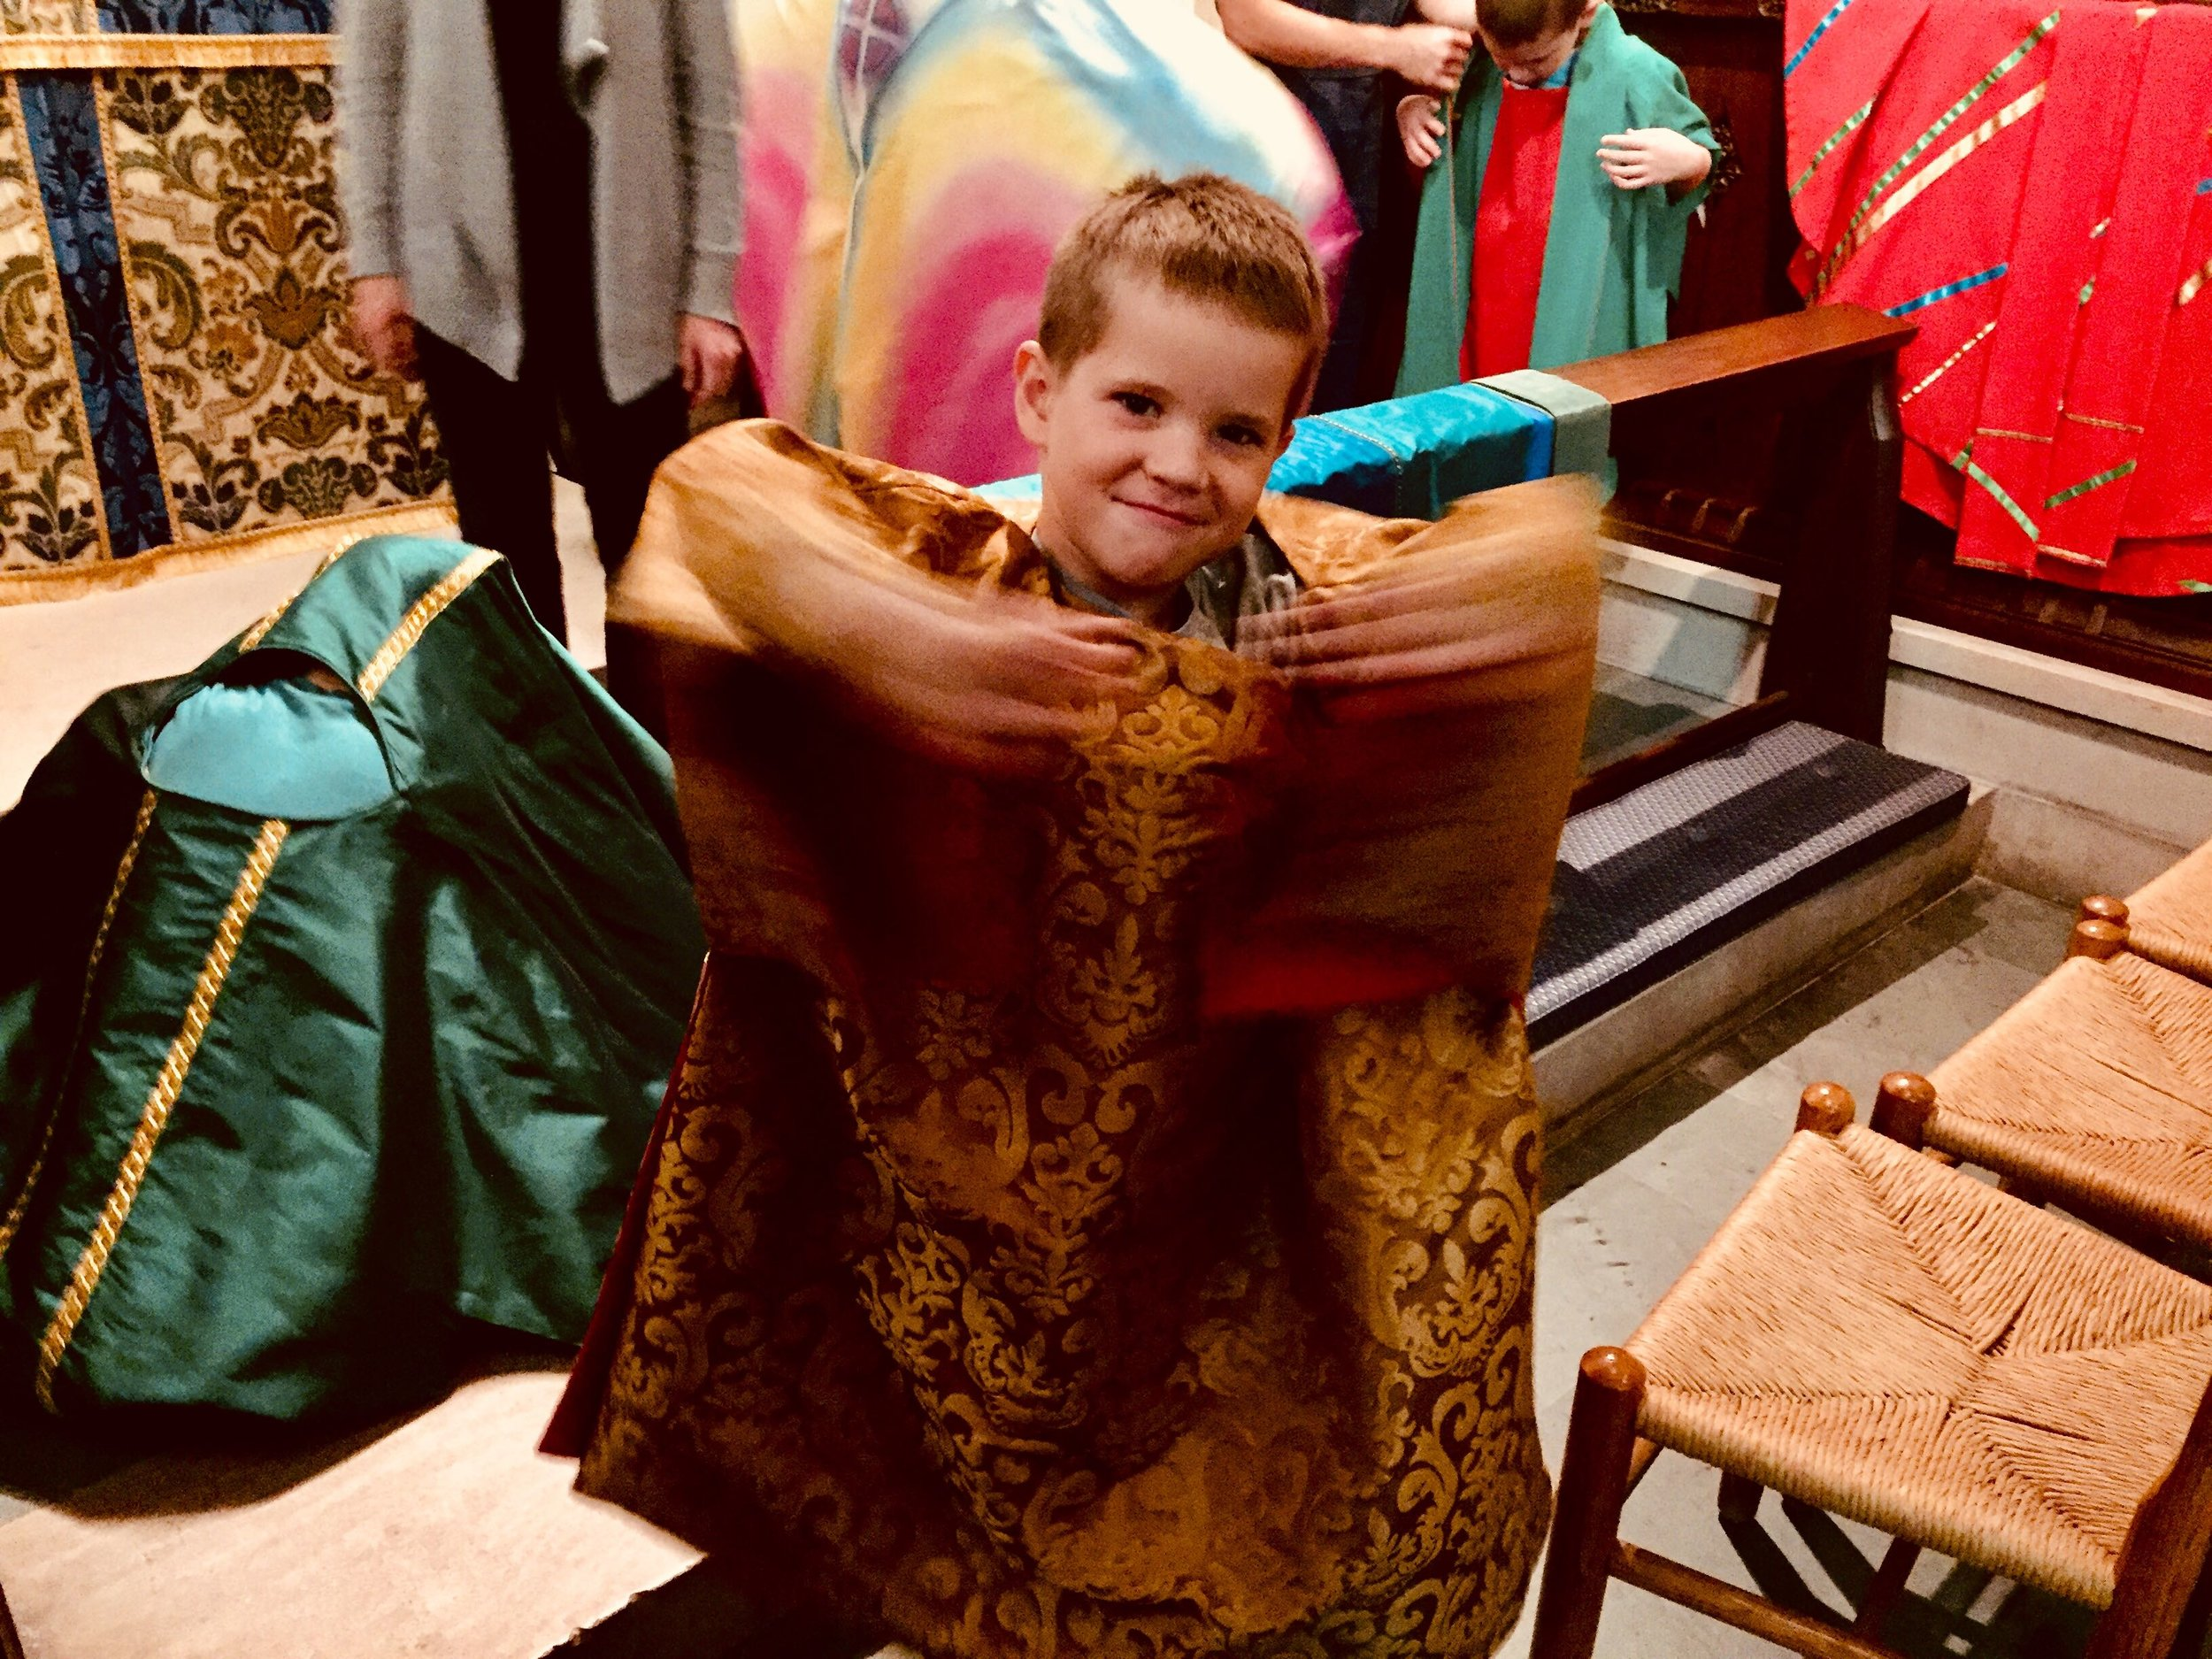 Pilgrimage Night to Canterbury involved trying on vestments to dress like St. Thomas Becket!